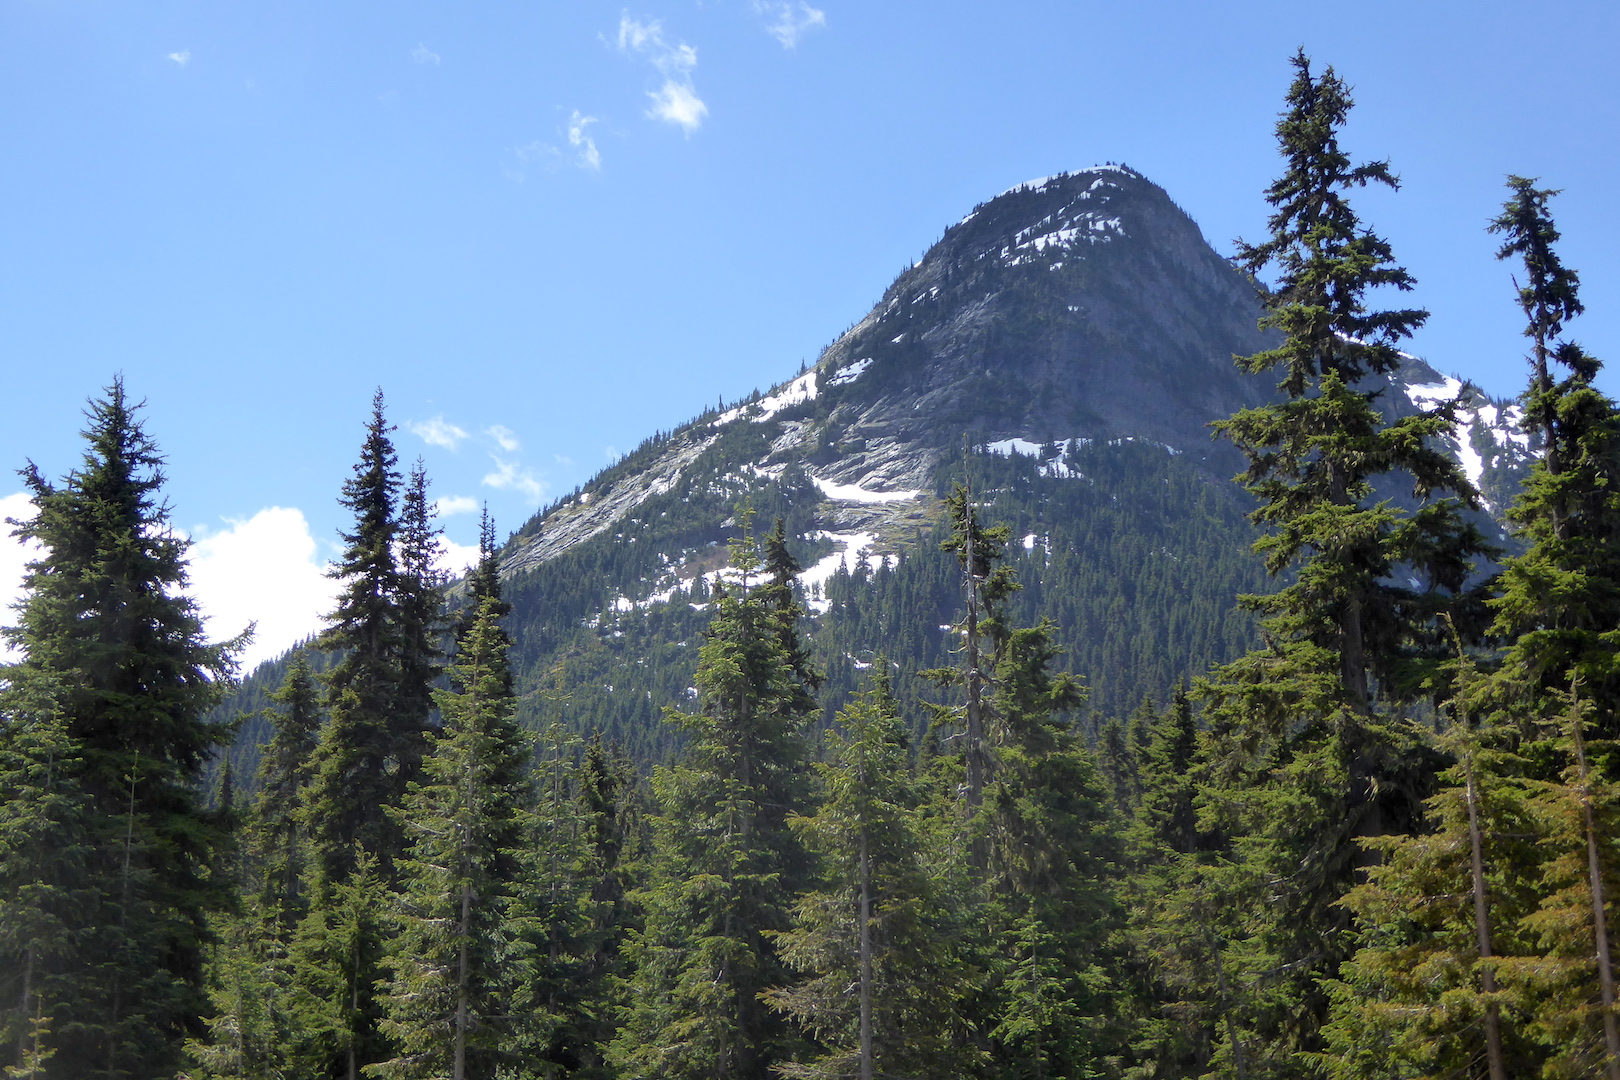 view of mountain peak and conifer trees